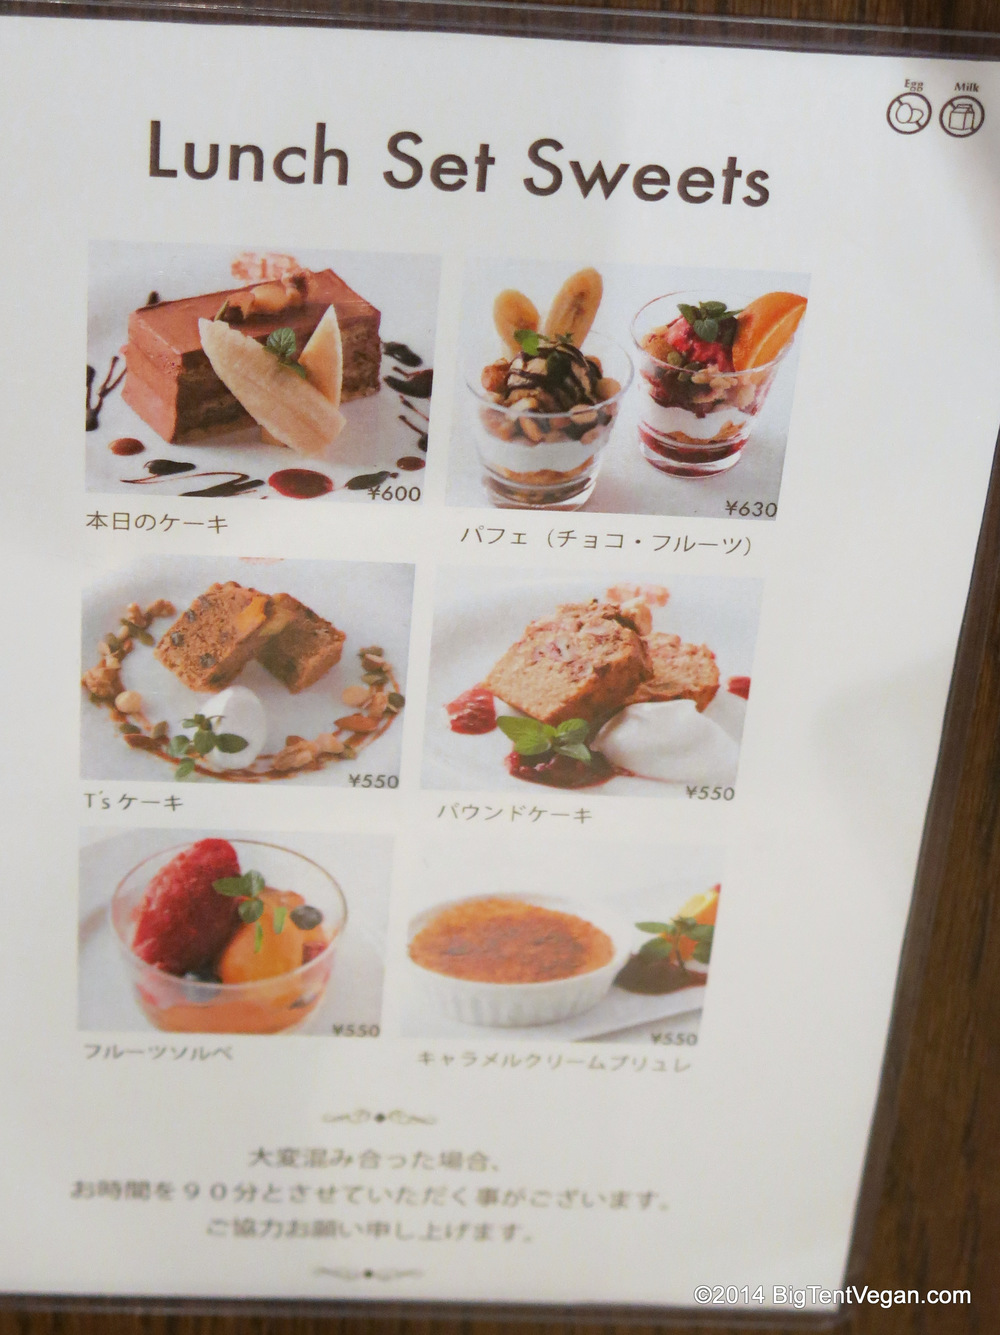 T's Restaurant Lunch Dessert Menu as of July 2014 (click to enlarge)